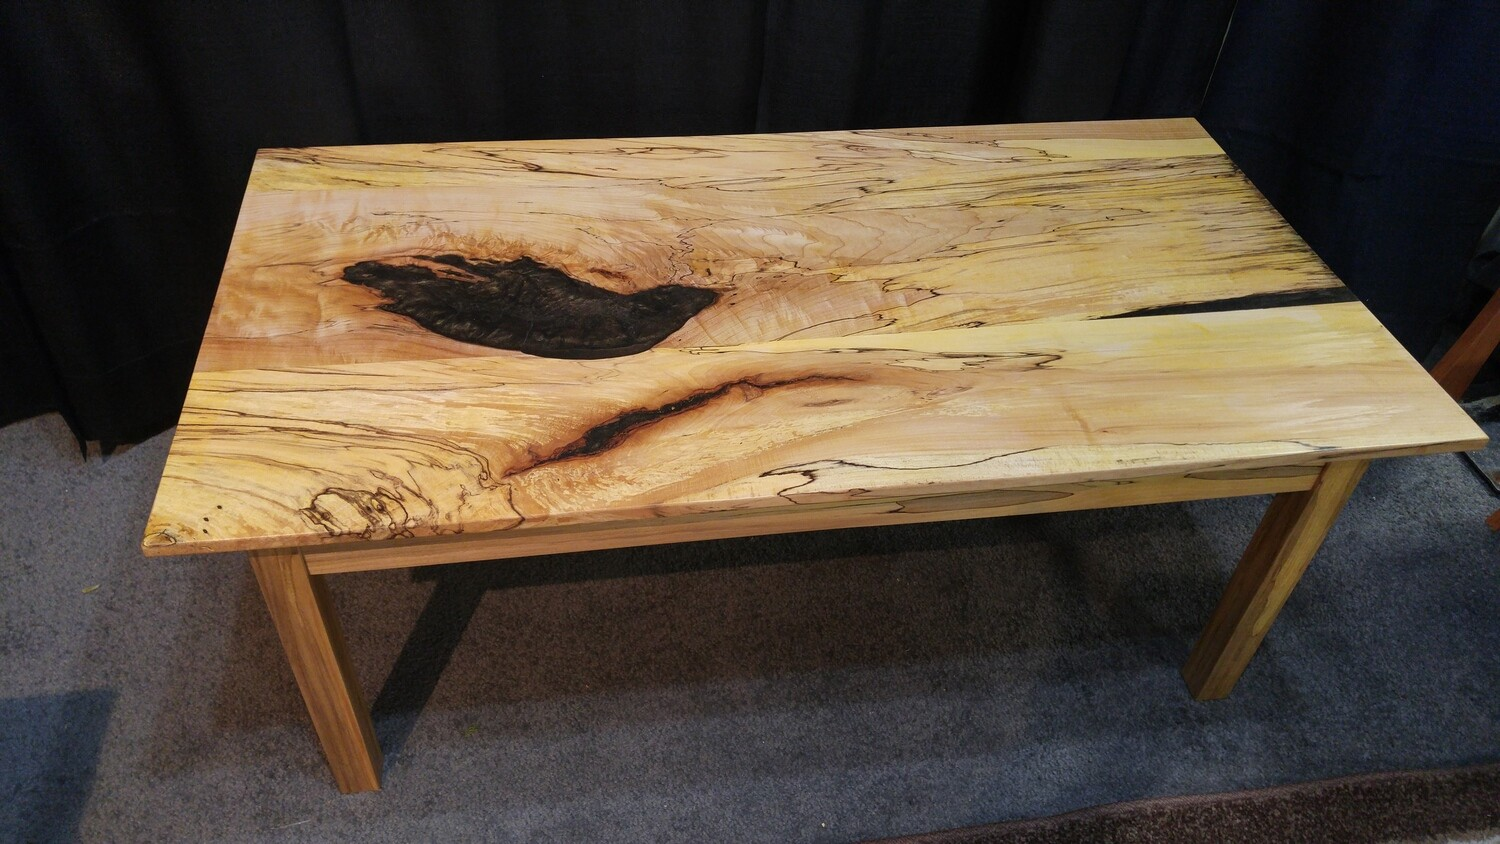 Spalted Maple Coffee Table Reinforced With Resin